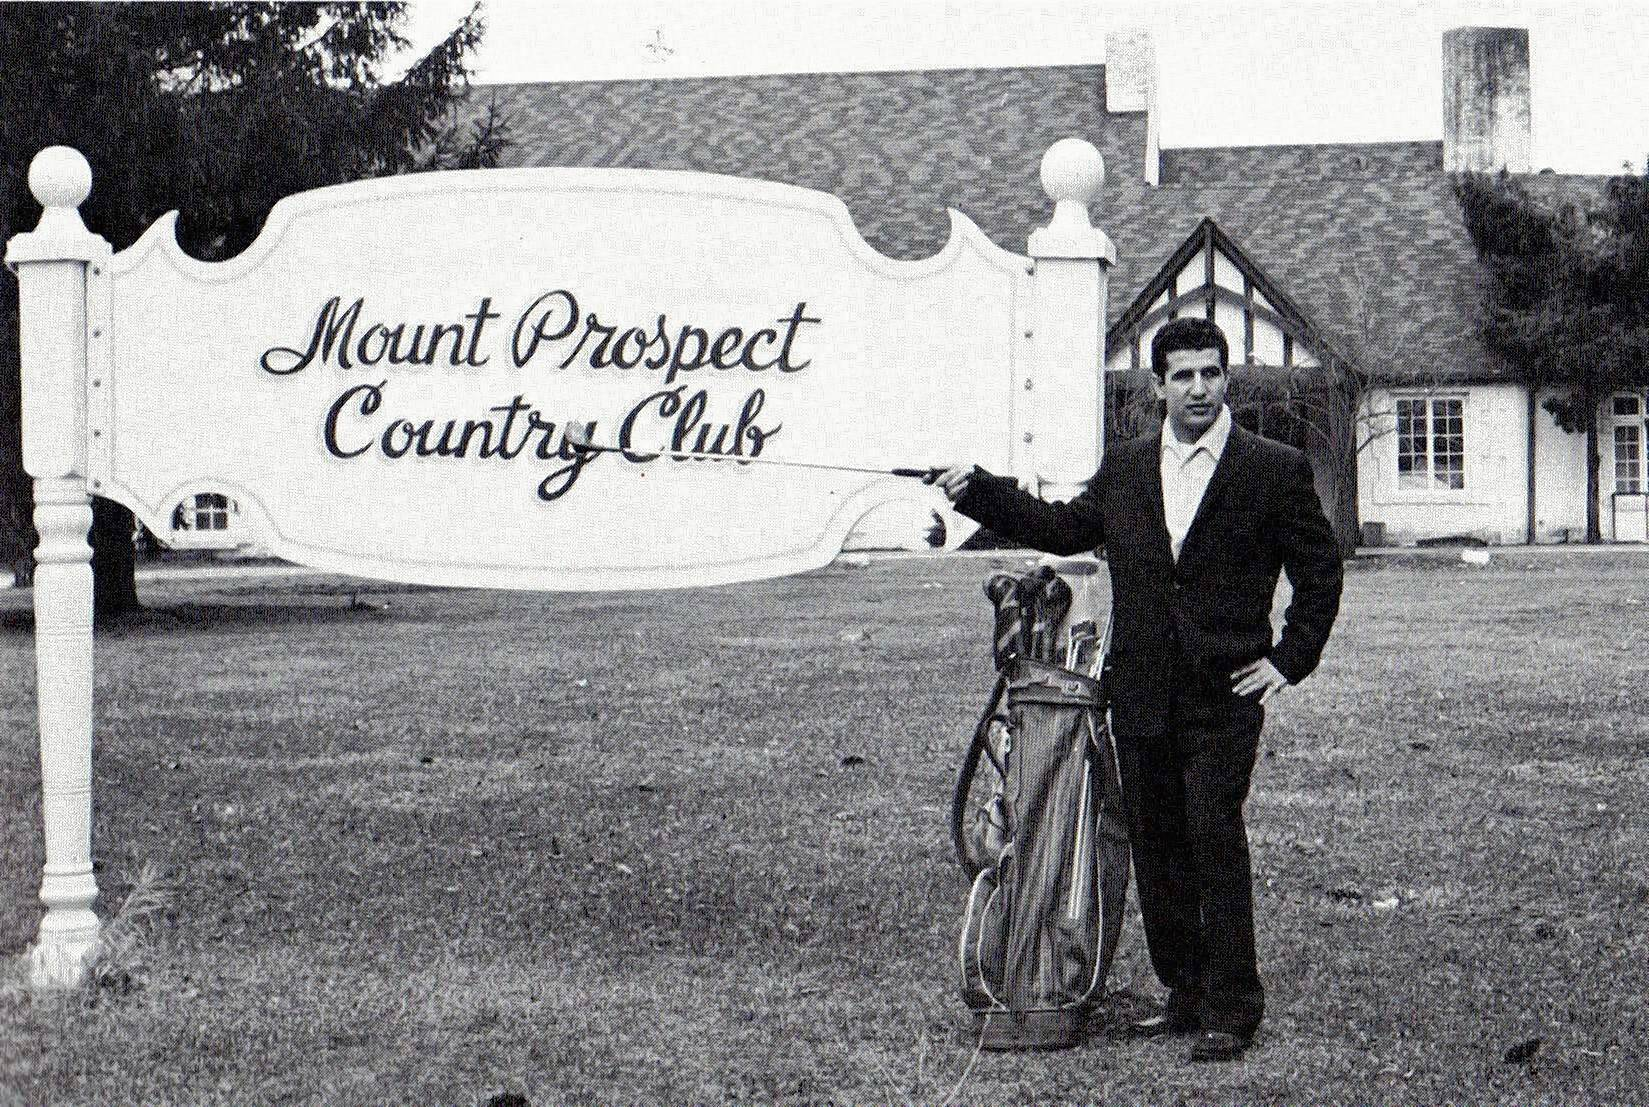 Reputed gangster Richard Hauff after he purchased the Mount Prospect golf course in 1958.